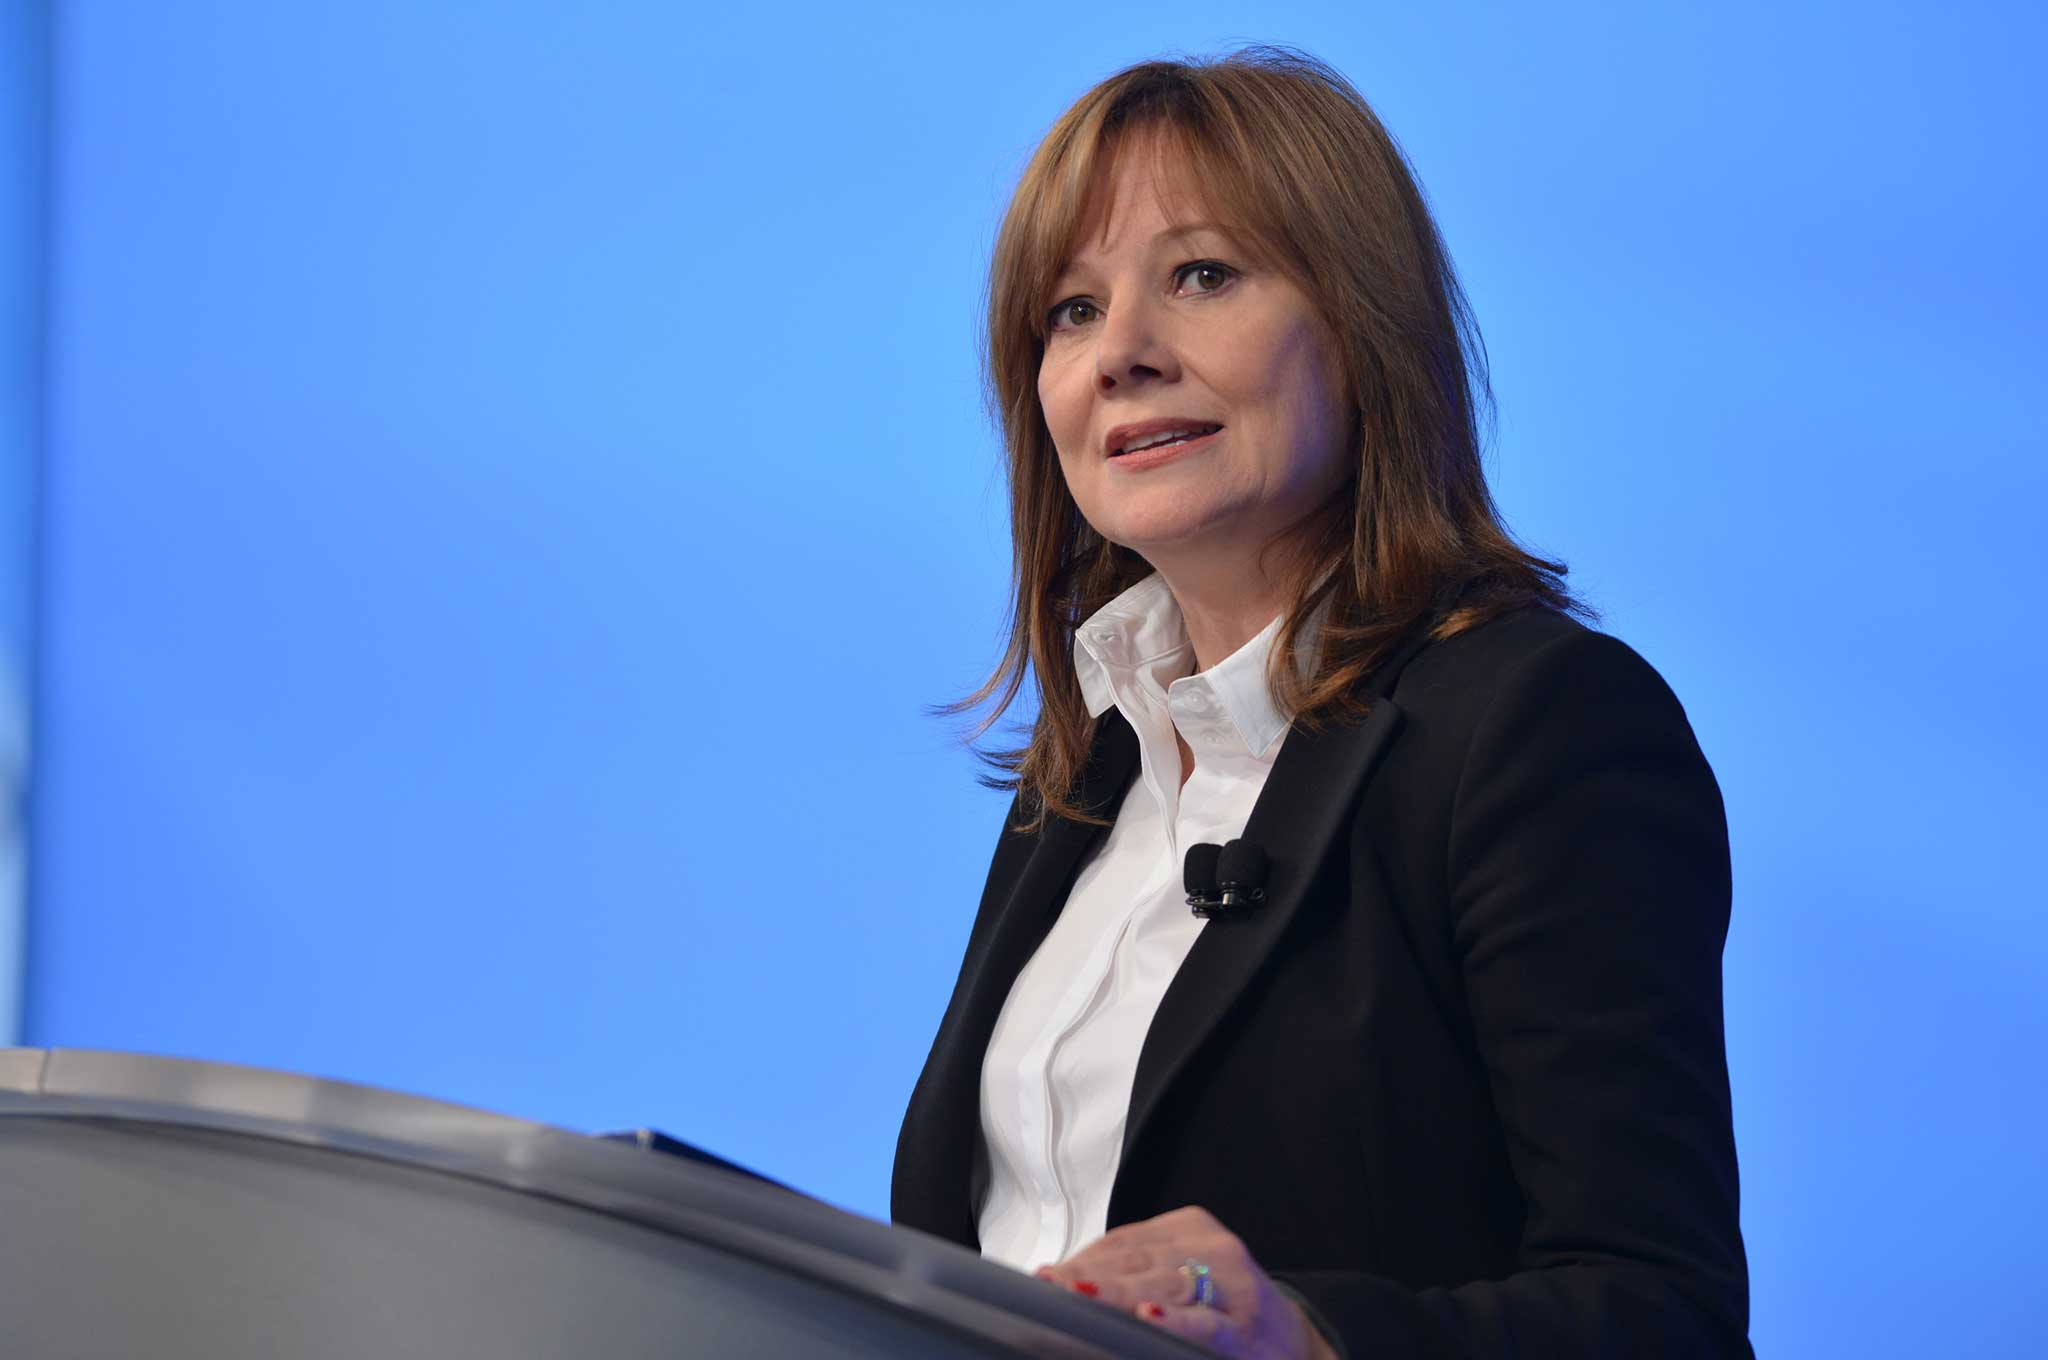 Gm Ceo Mary Barra Recall Update